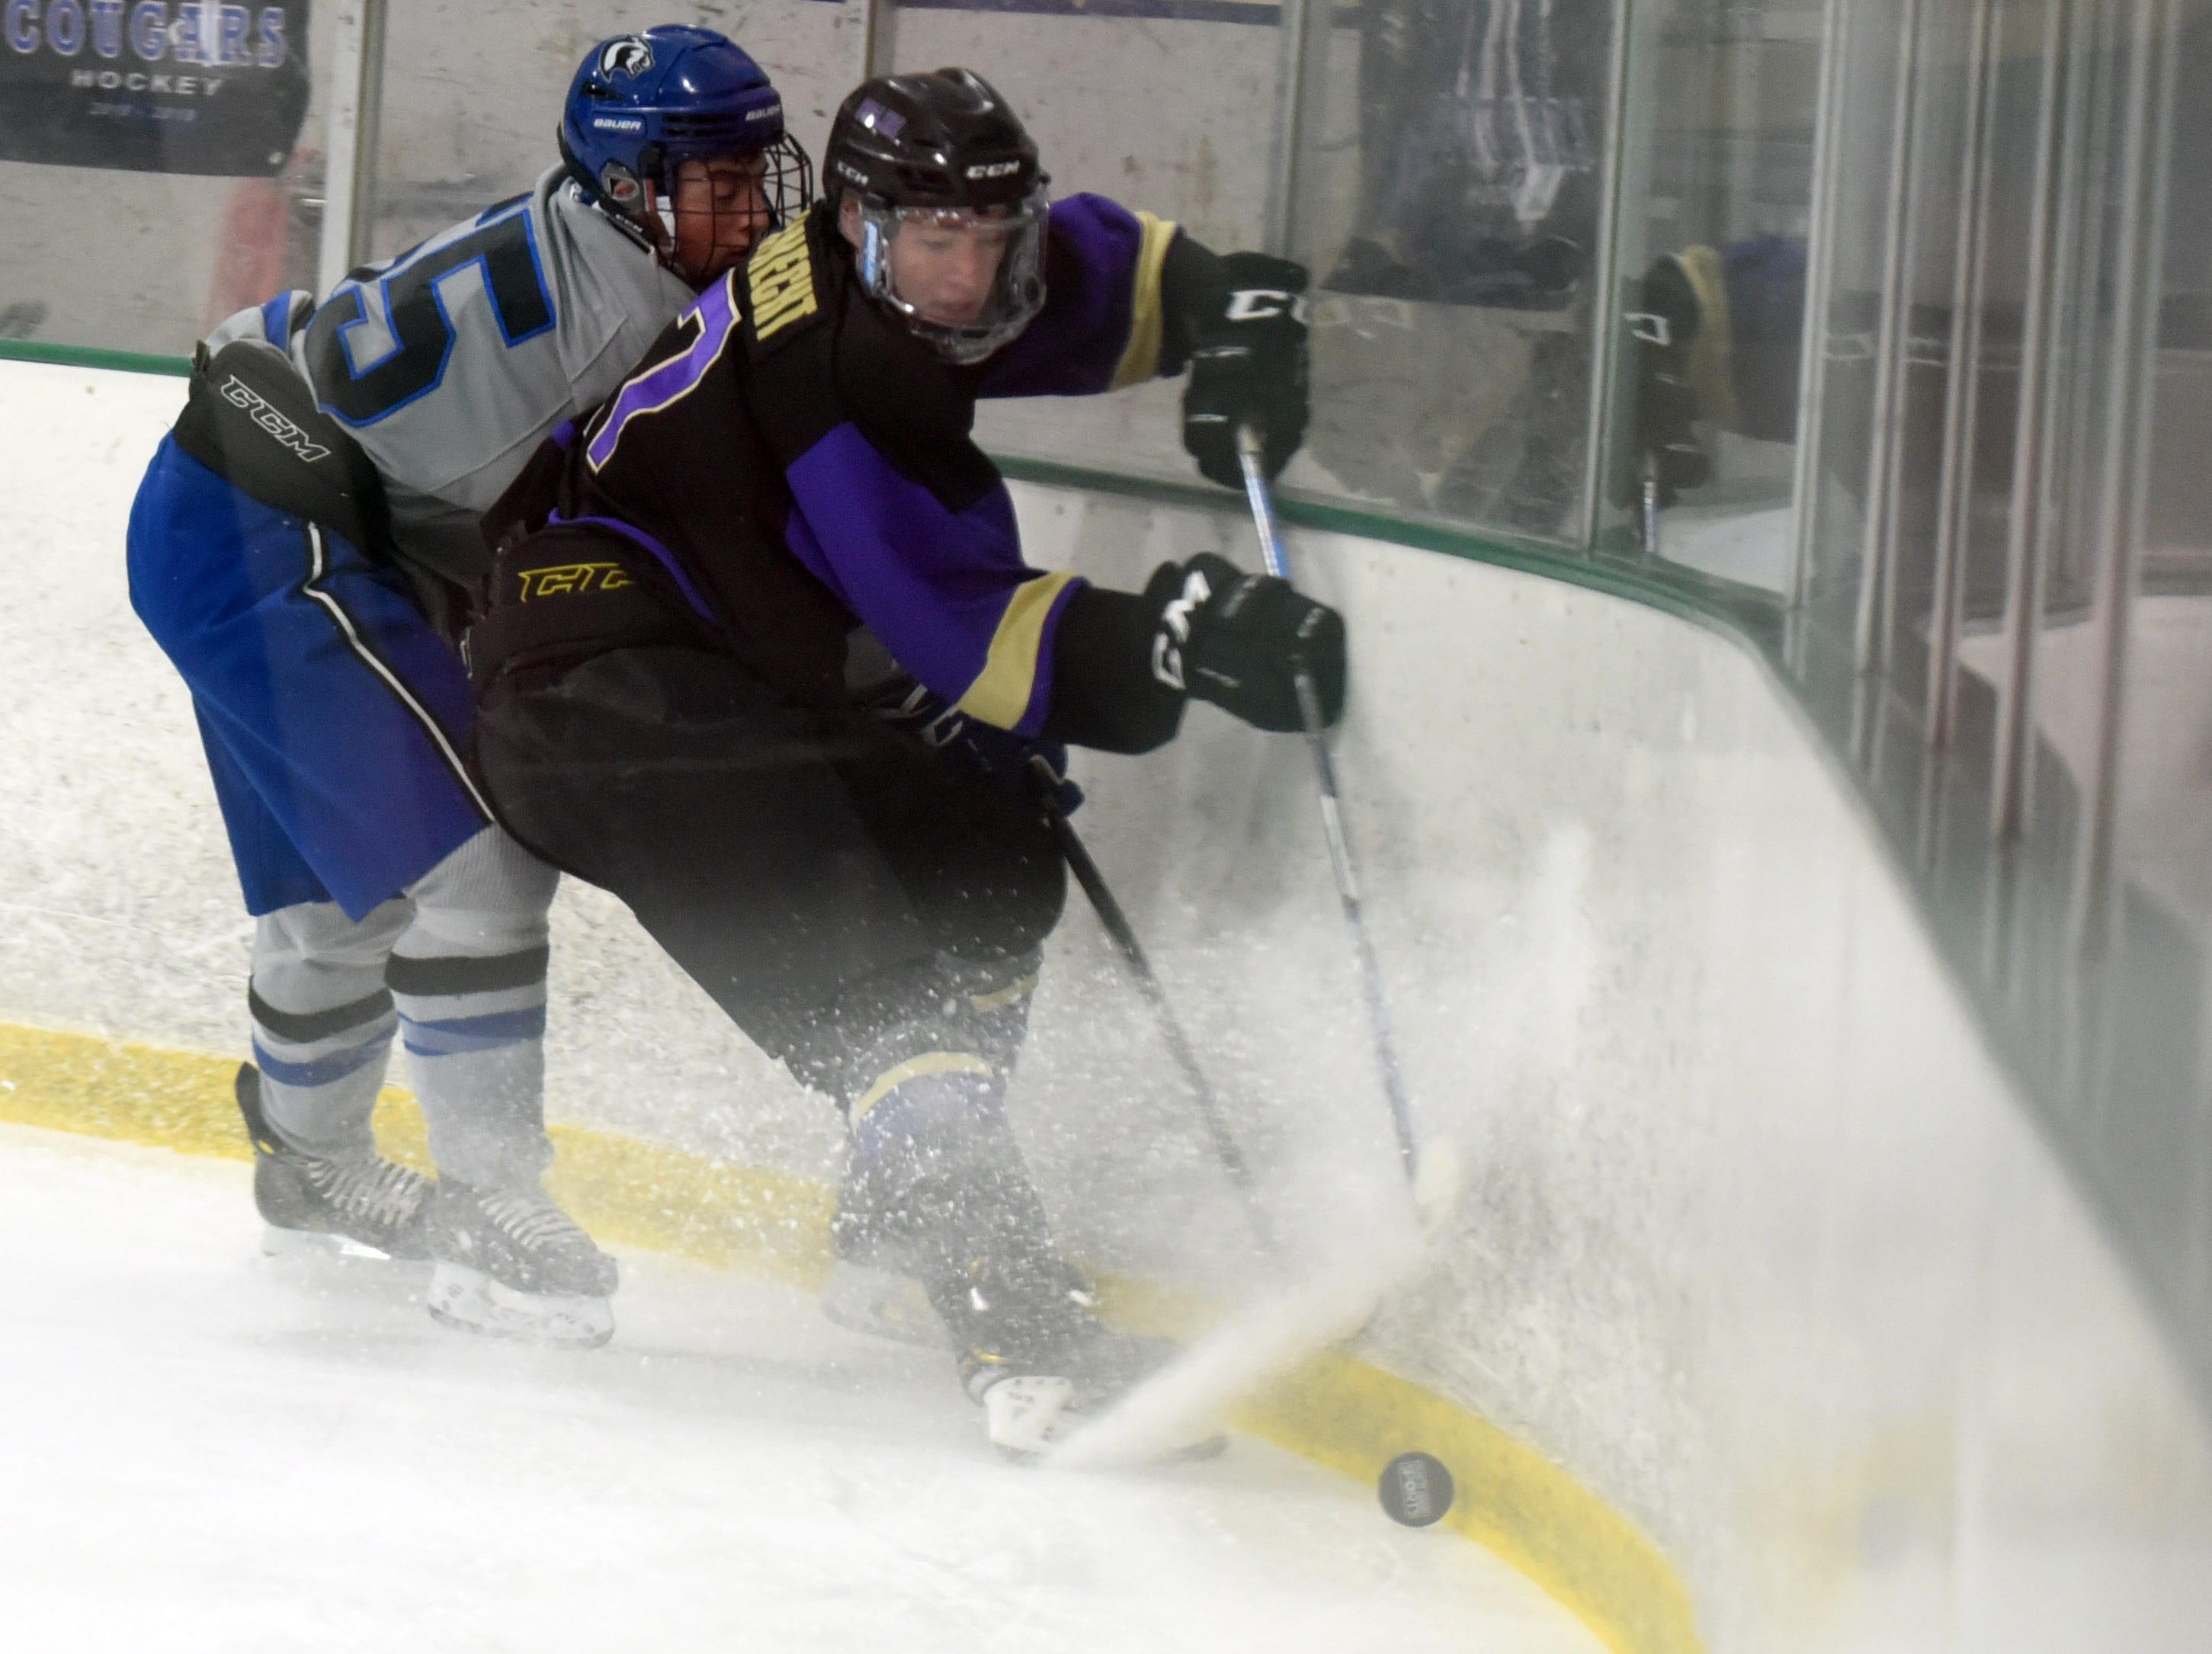 Fort Collins' Marc DuHadway tries to break away from Resurrection Christian's Eric Tyrrell during the game on Saturday, Feb 2, at NoCo Ice Center, 7900 N Fairgrounds Ave, in Fort Collins.